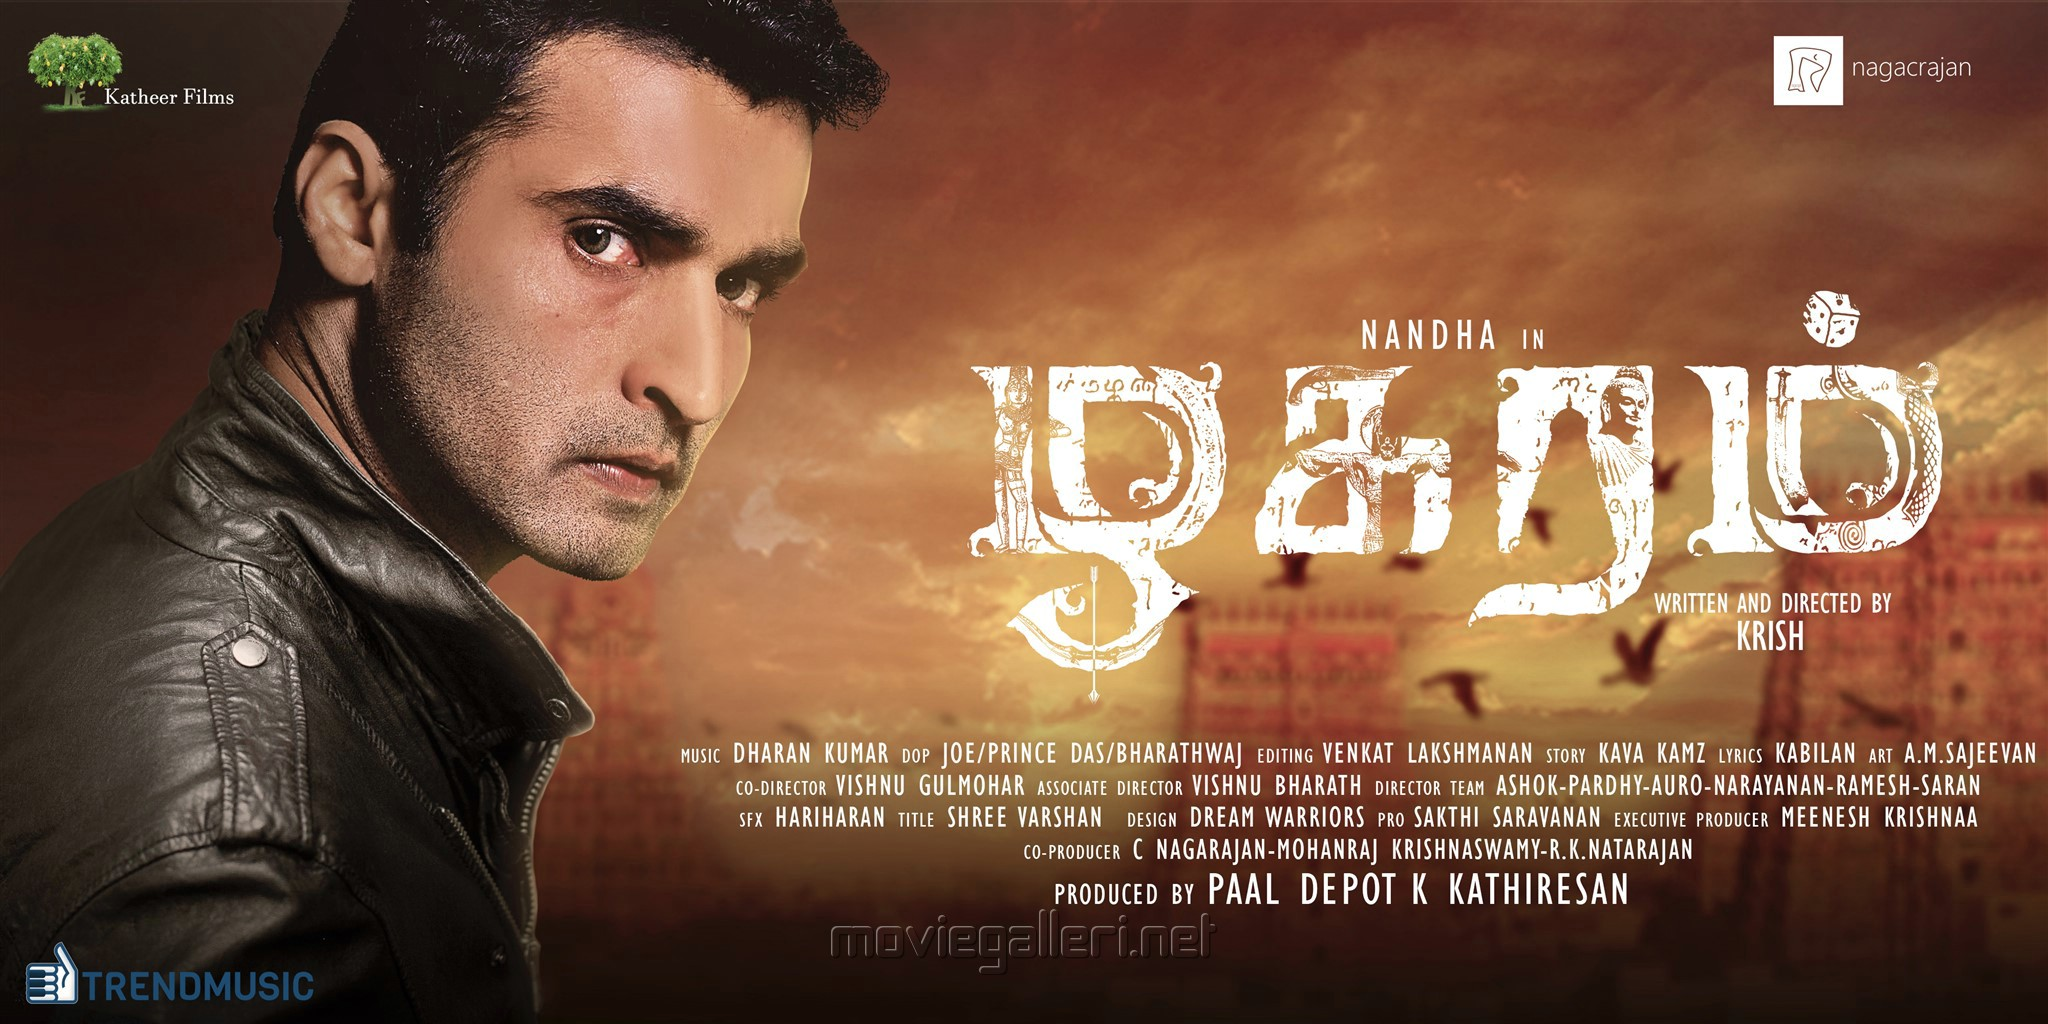 Nandha Zhagaram Movie Poster HD